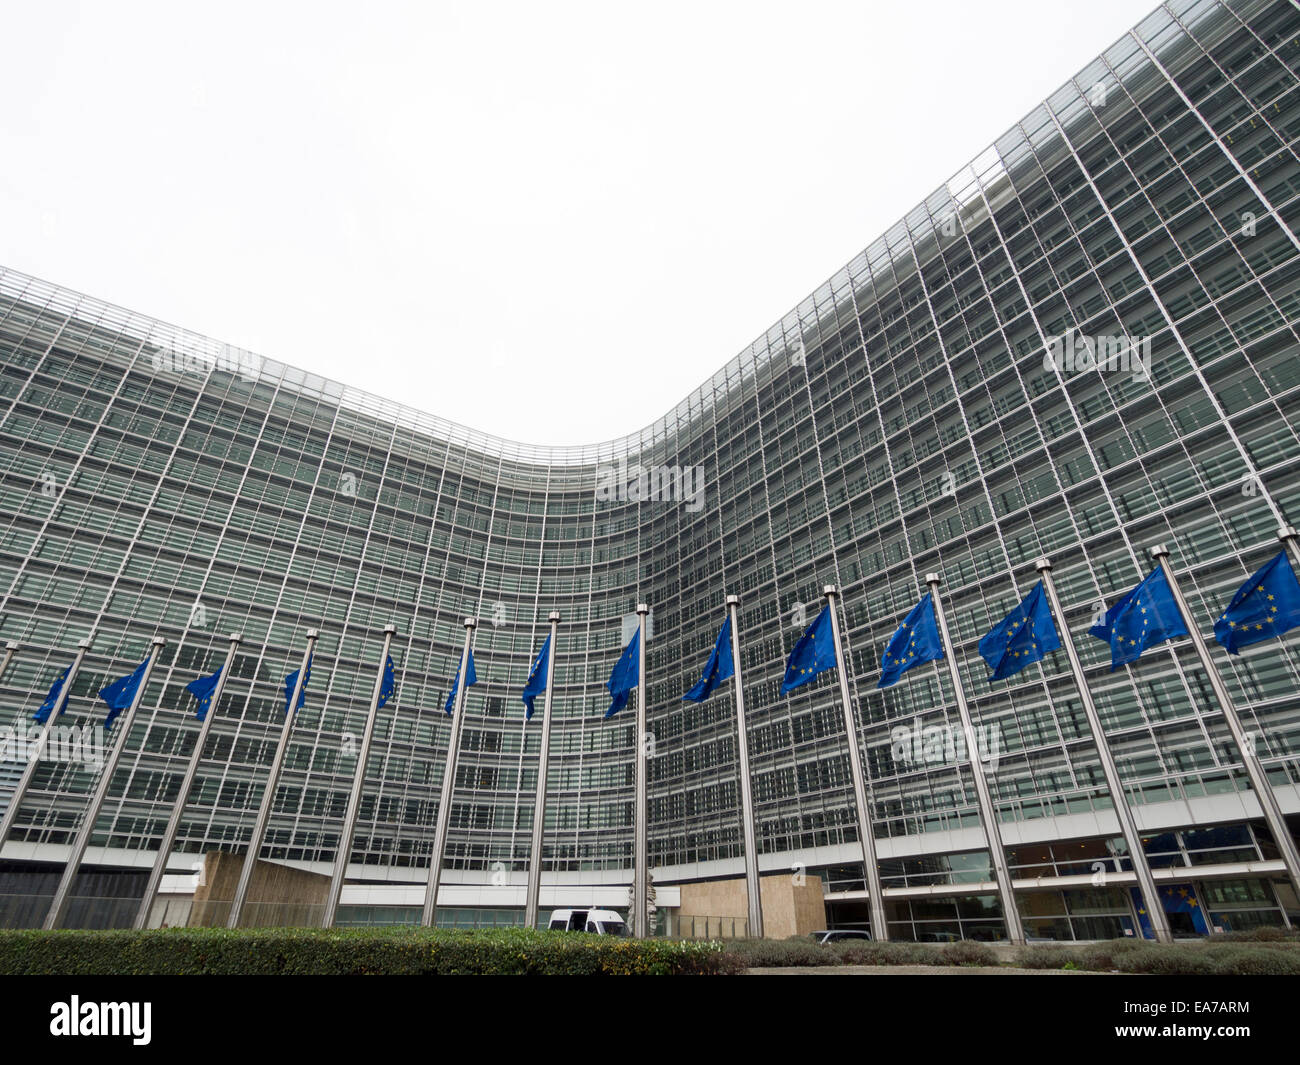 European Union flags in front of the Berlaymont building, headquarters of the European commission in Brussels, Belgium, Stock Photo